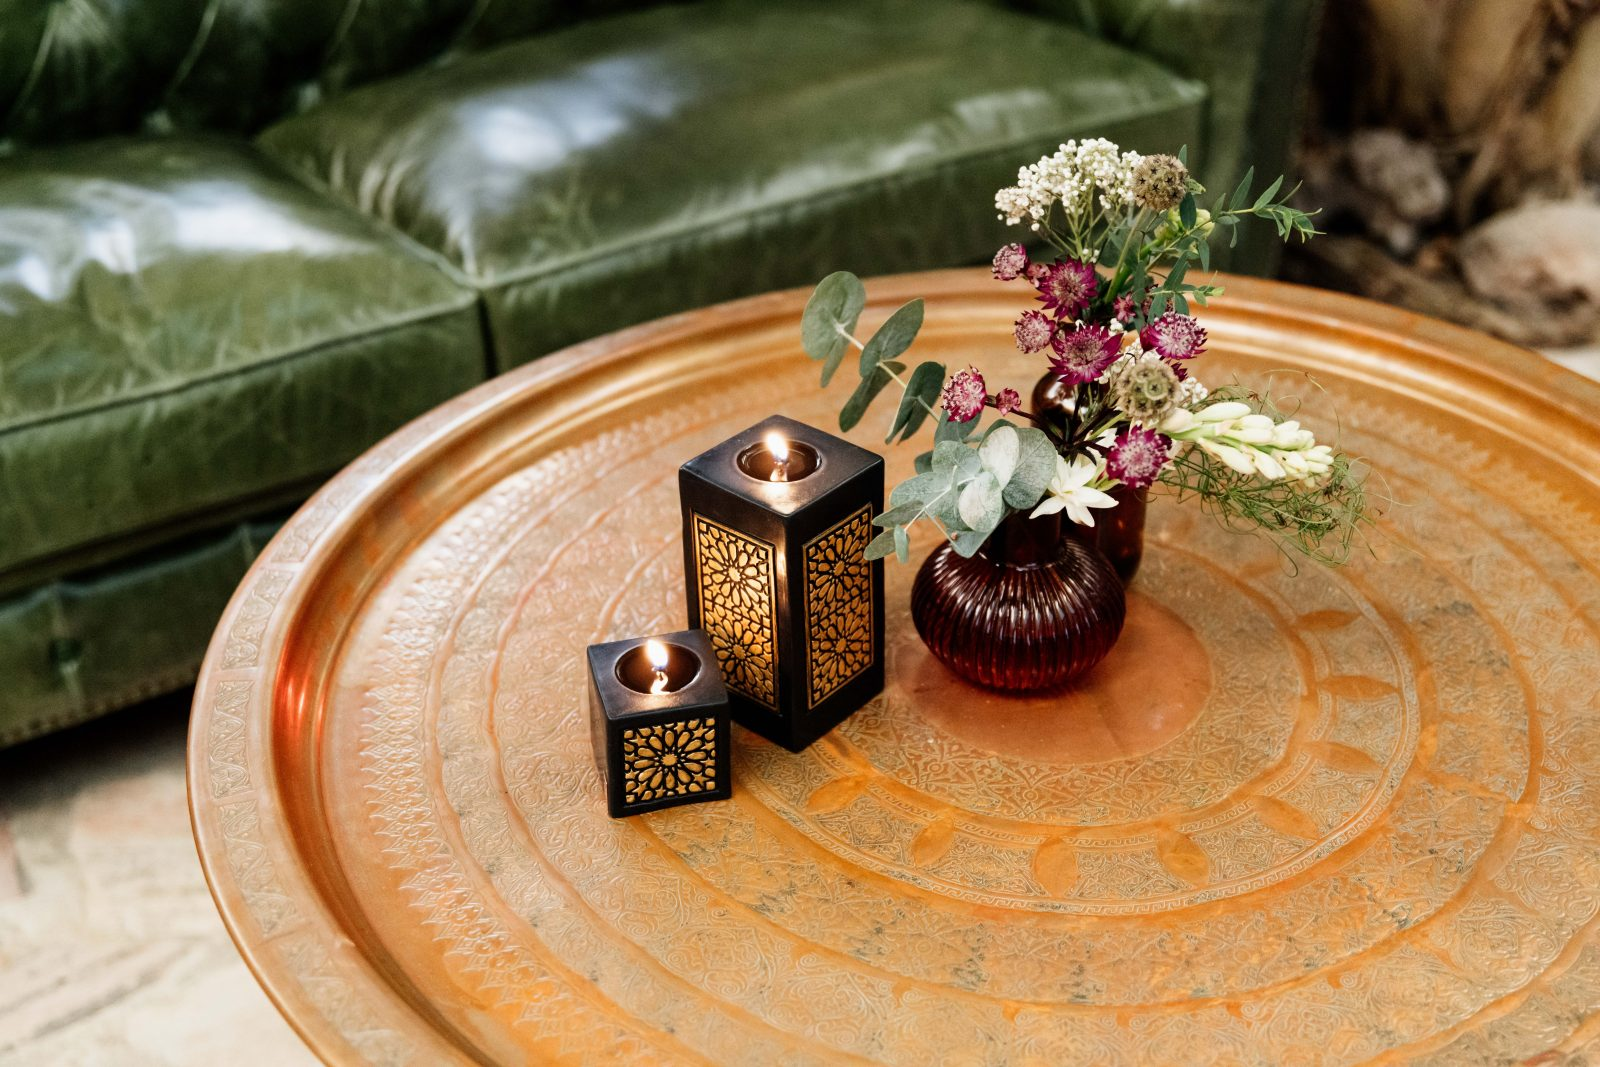 Flower and candle arrangement on Persian style table